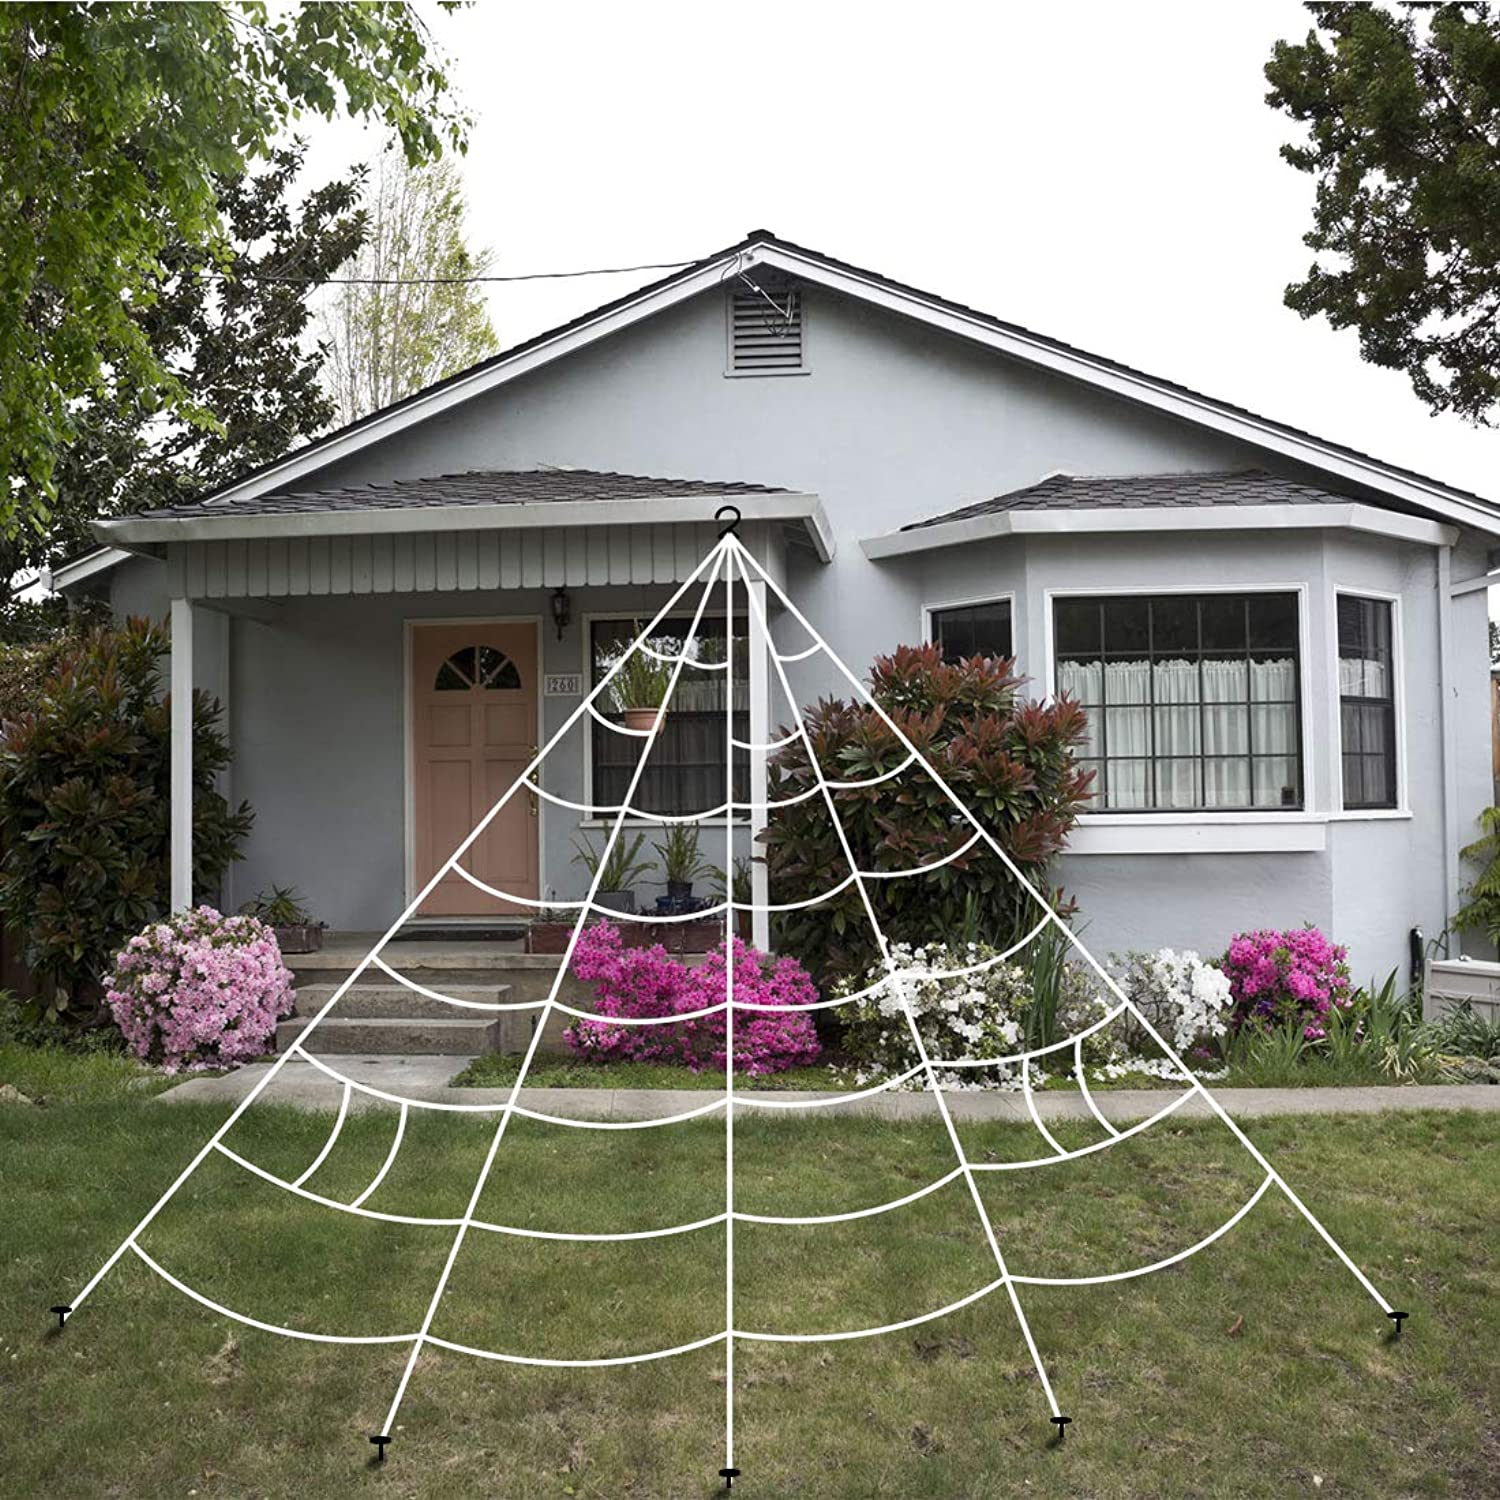 KOMIWOO 192 Inch 16 Feet Giant Huge White Spider Web Decorations, Halloween Large Size Realistic Fake Spiderweb Decor, Outdoor Yard Halloween Decorations for Halloween Party, Giant Spider